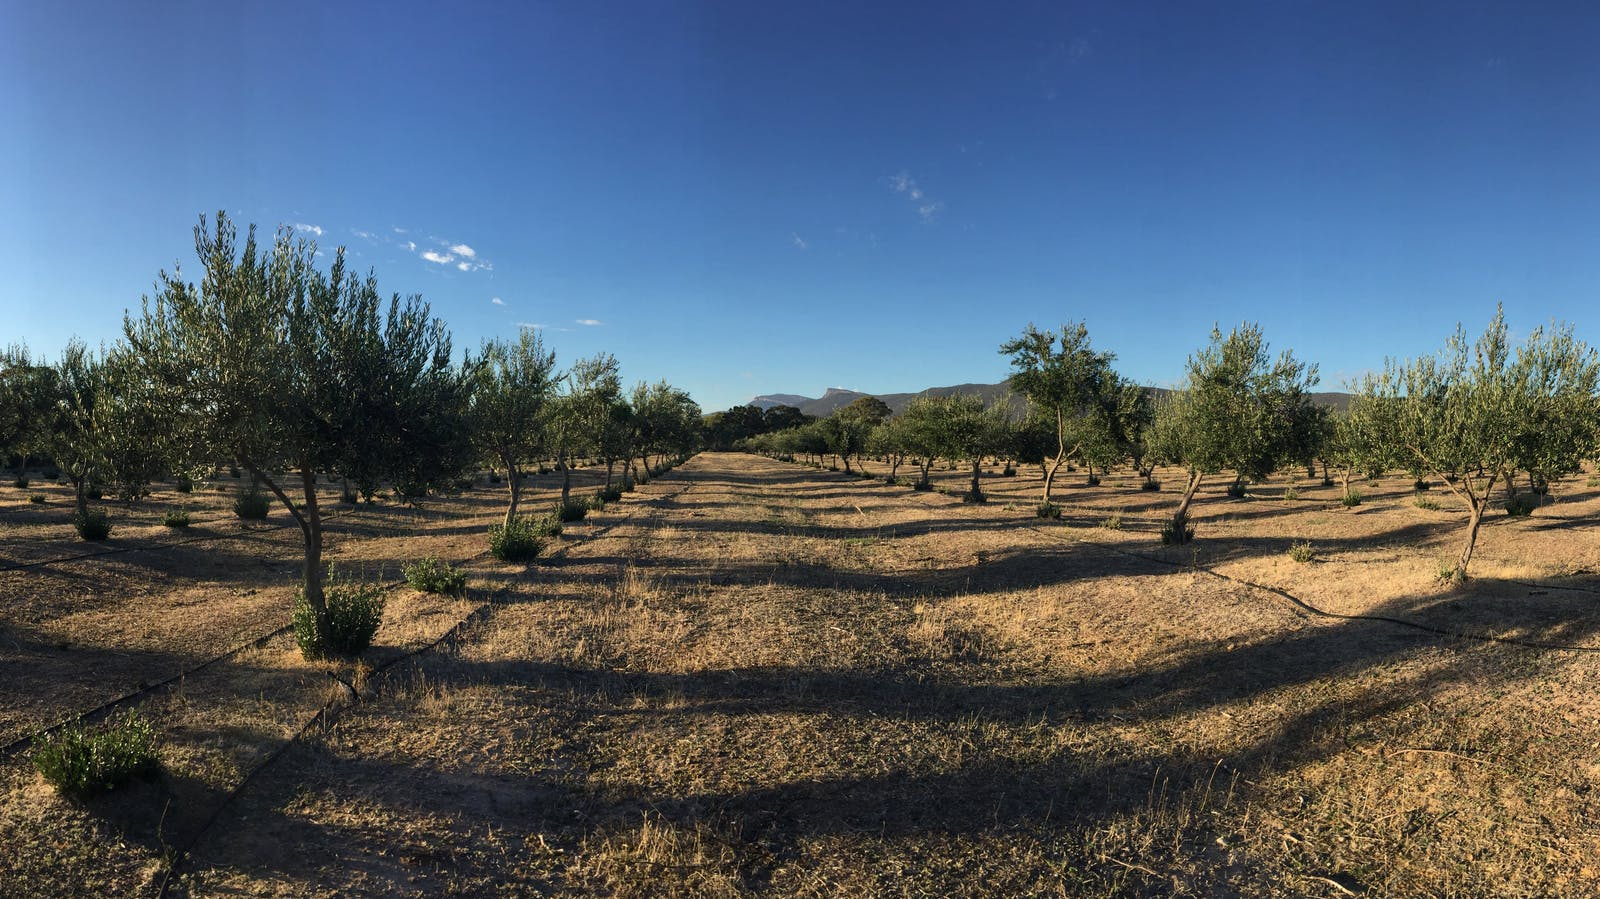 The olive grove at sunrise